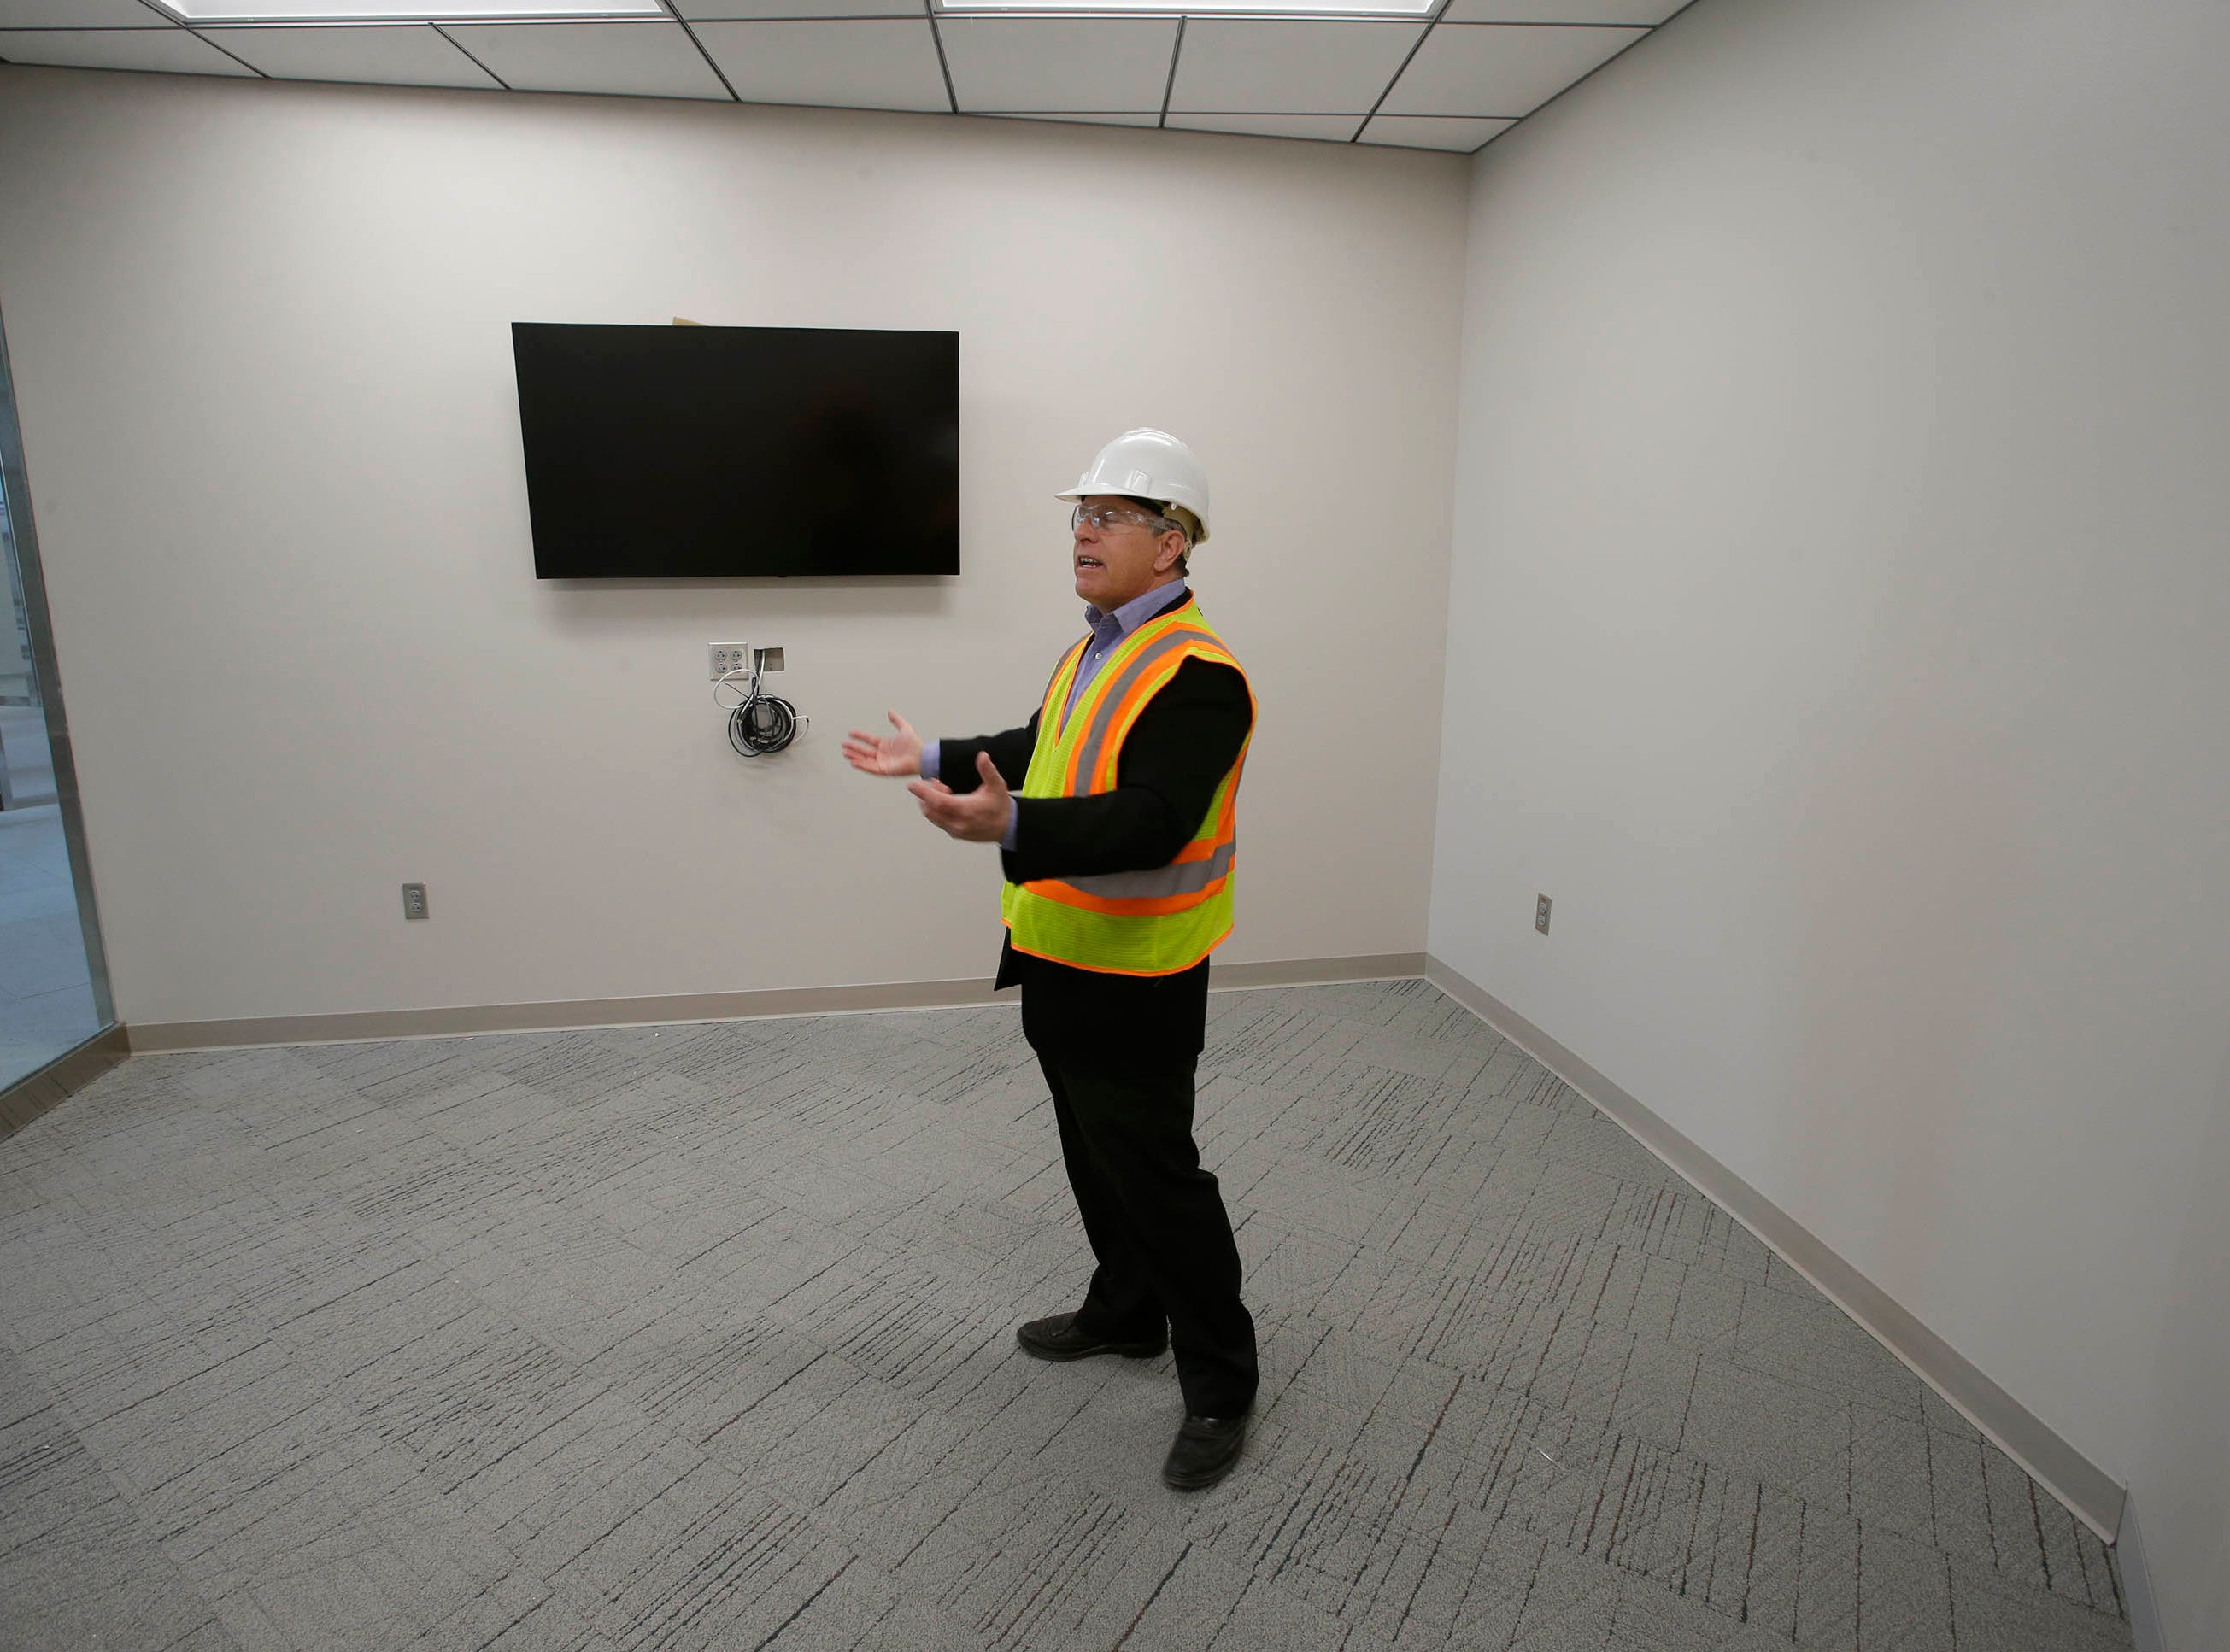 Director of Public Works Director David Biebel stands in the building inspection's meeting room area in the remodeled Sheboygan City Hall, Tuesday, May 7, 2019, in Sheboygan, Wis.